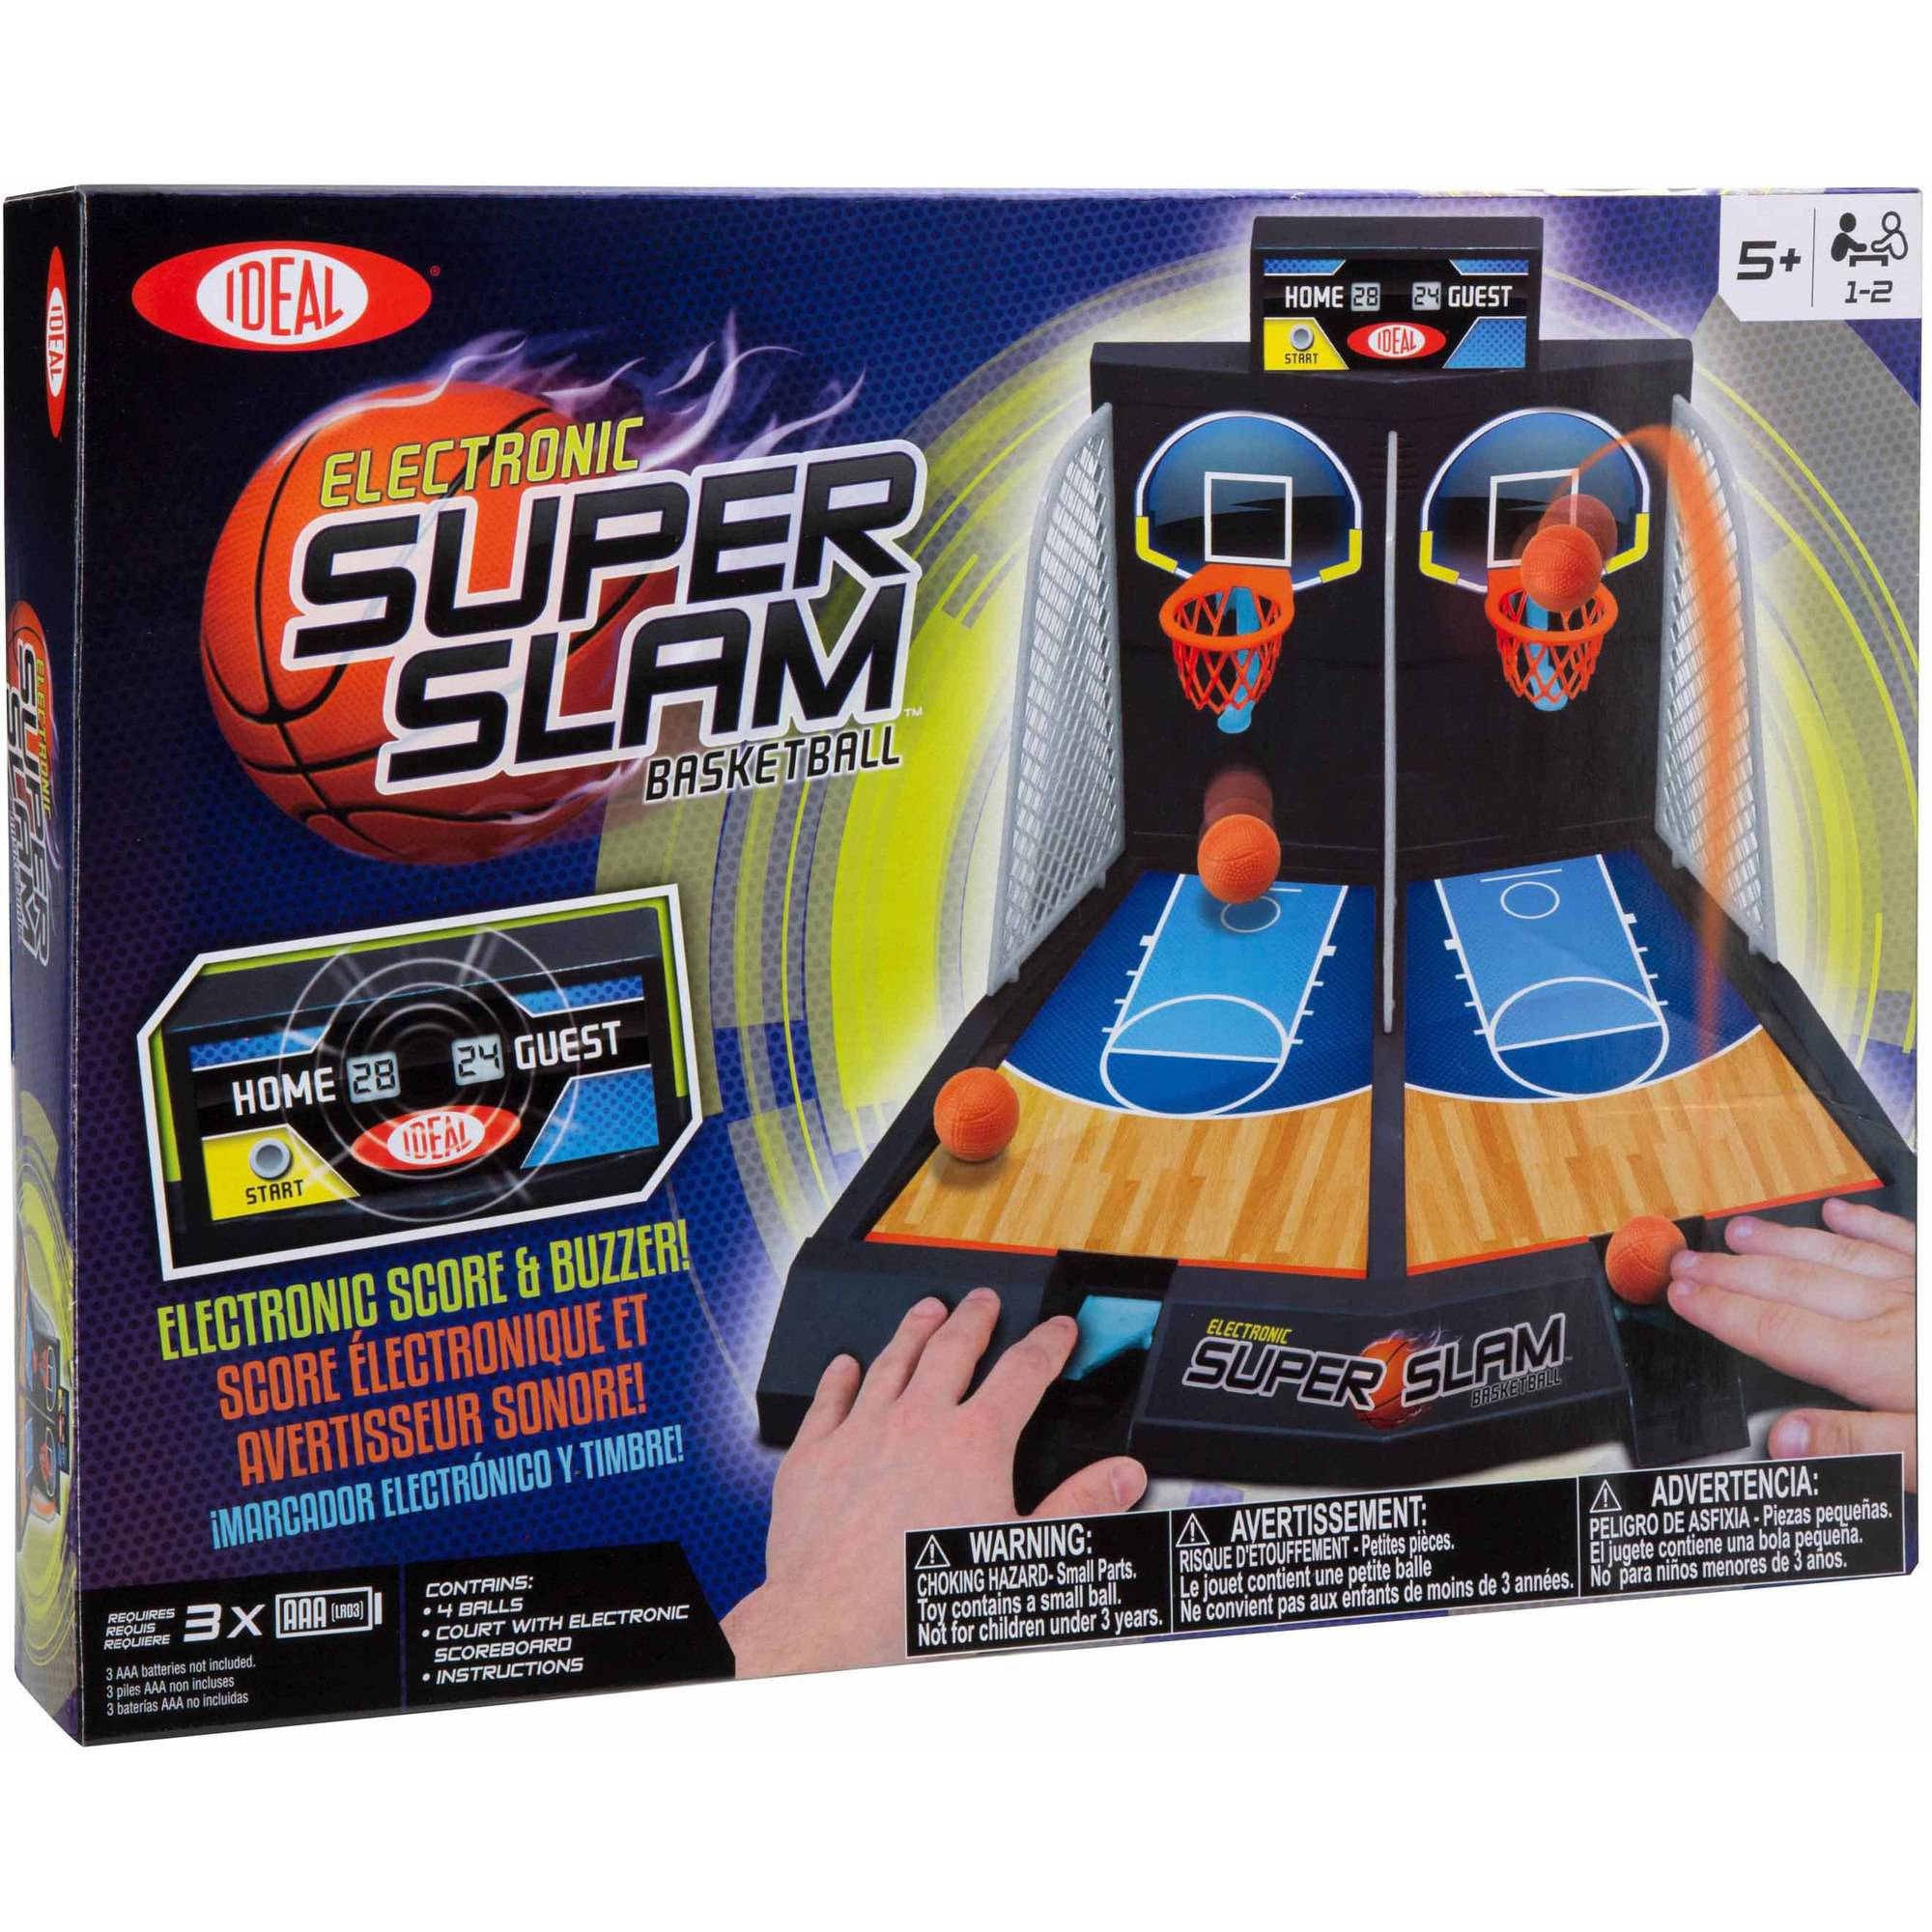 Ideal Electronic Super Slam Basketball Tabletop Game by Generic